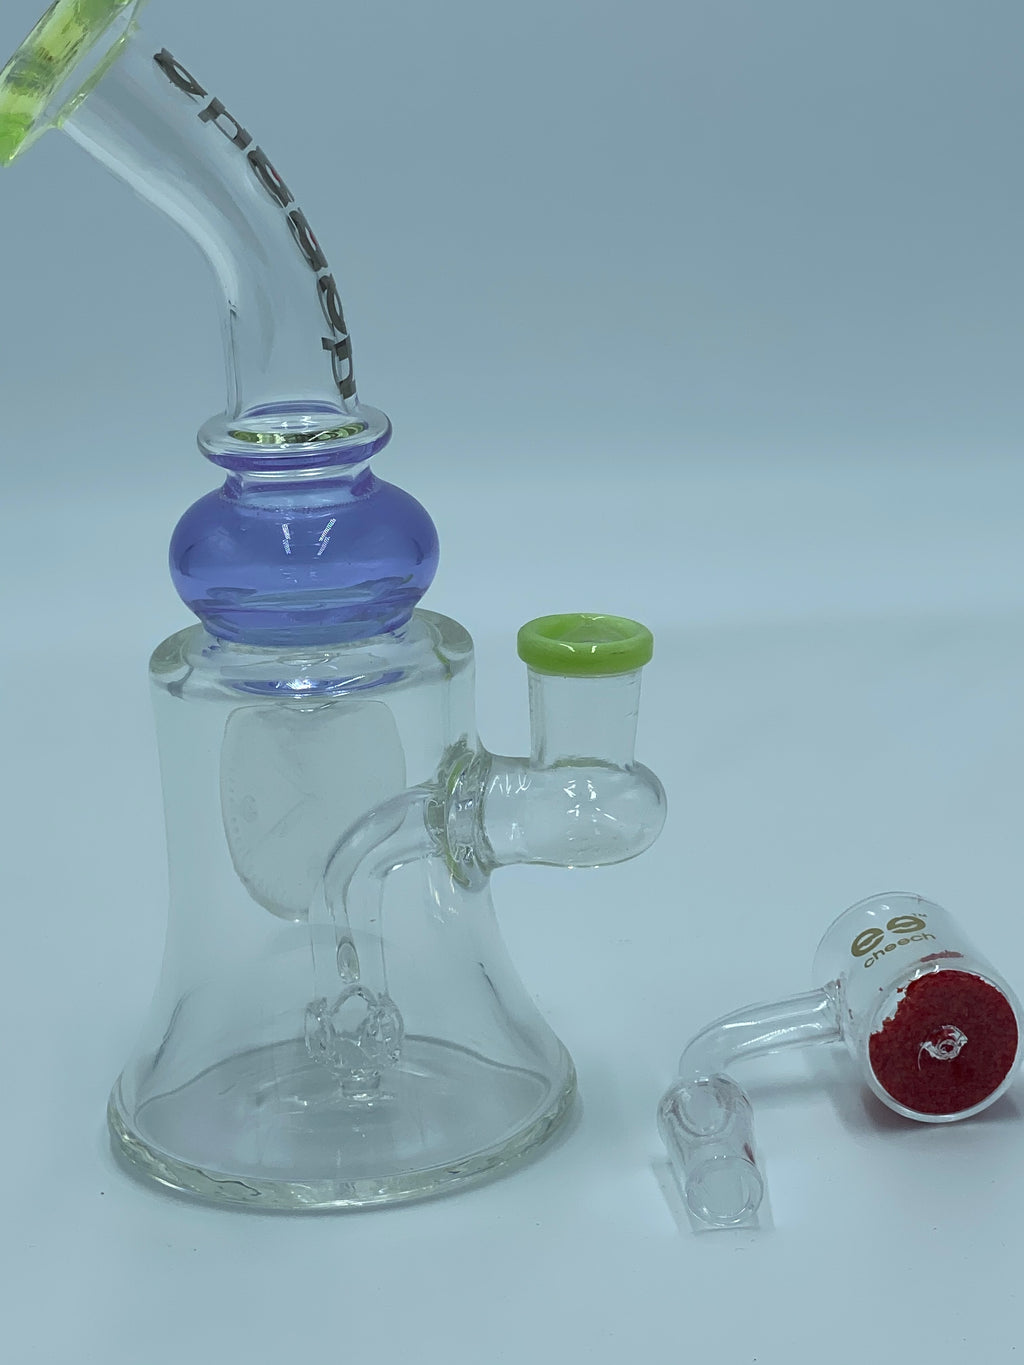 CHEECH GLASS CLOCK RIG SET - Smoke Country - Land of the artistic glass blown bongs